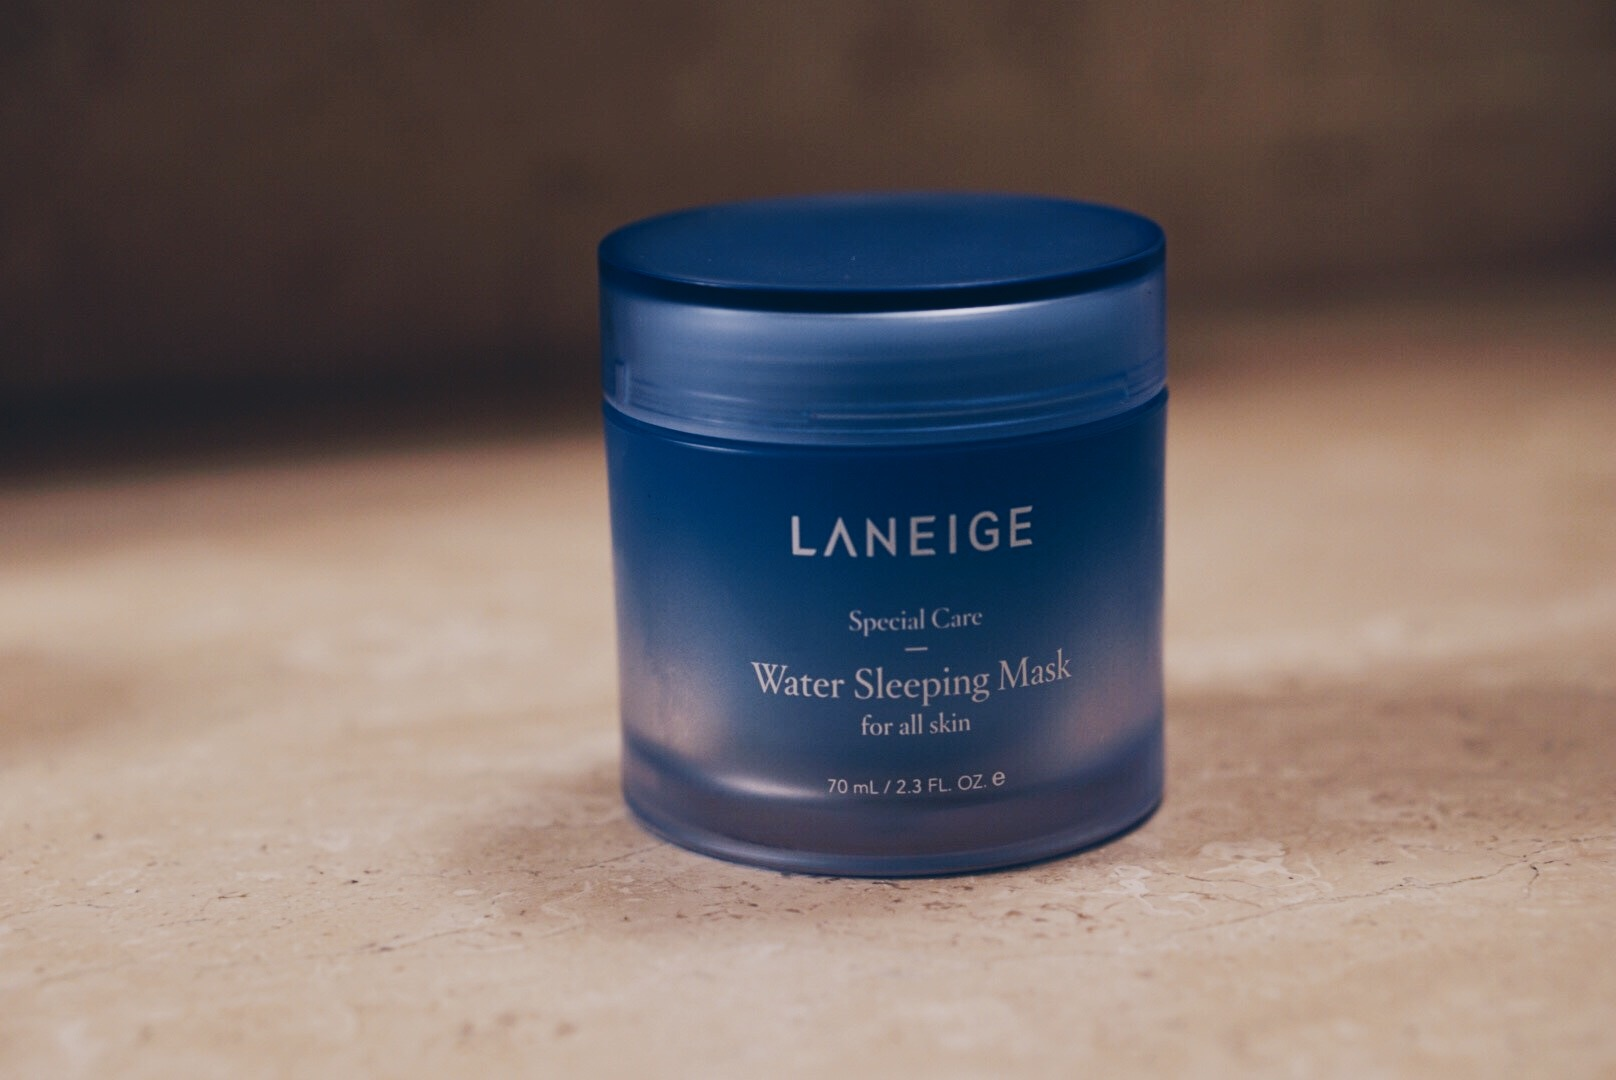 Laneige - Water Sleeping Mask for ALL skin